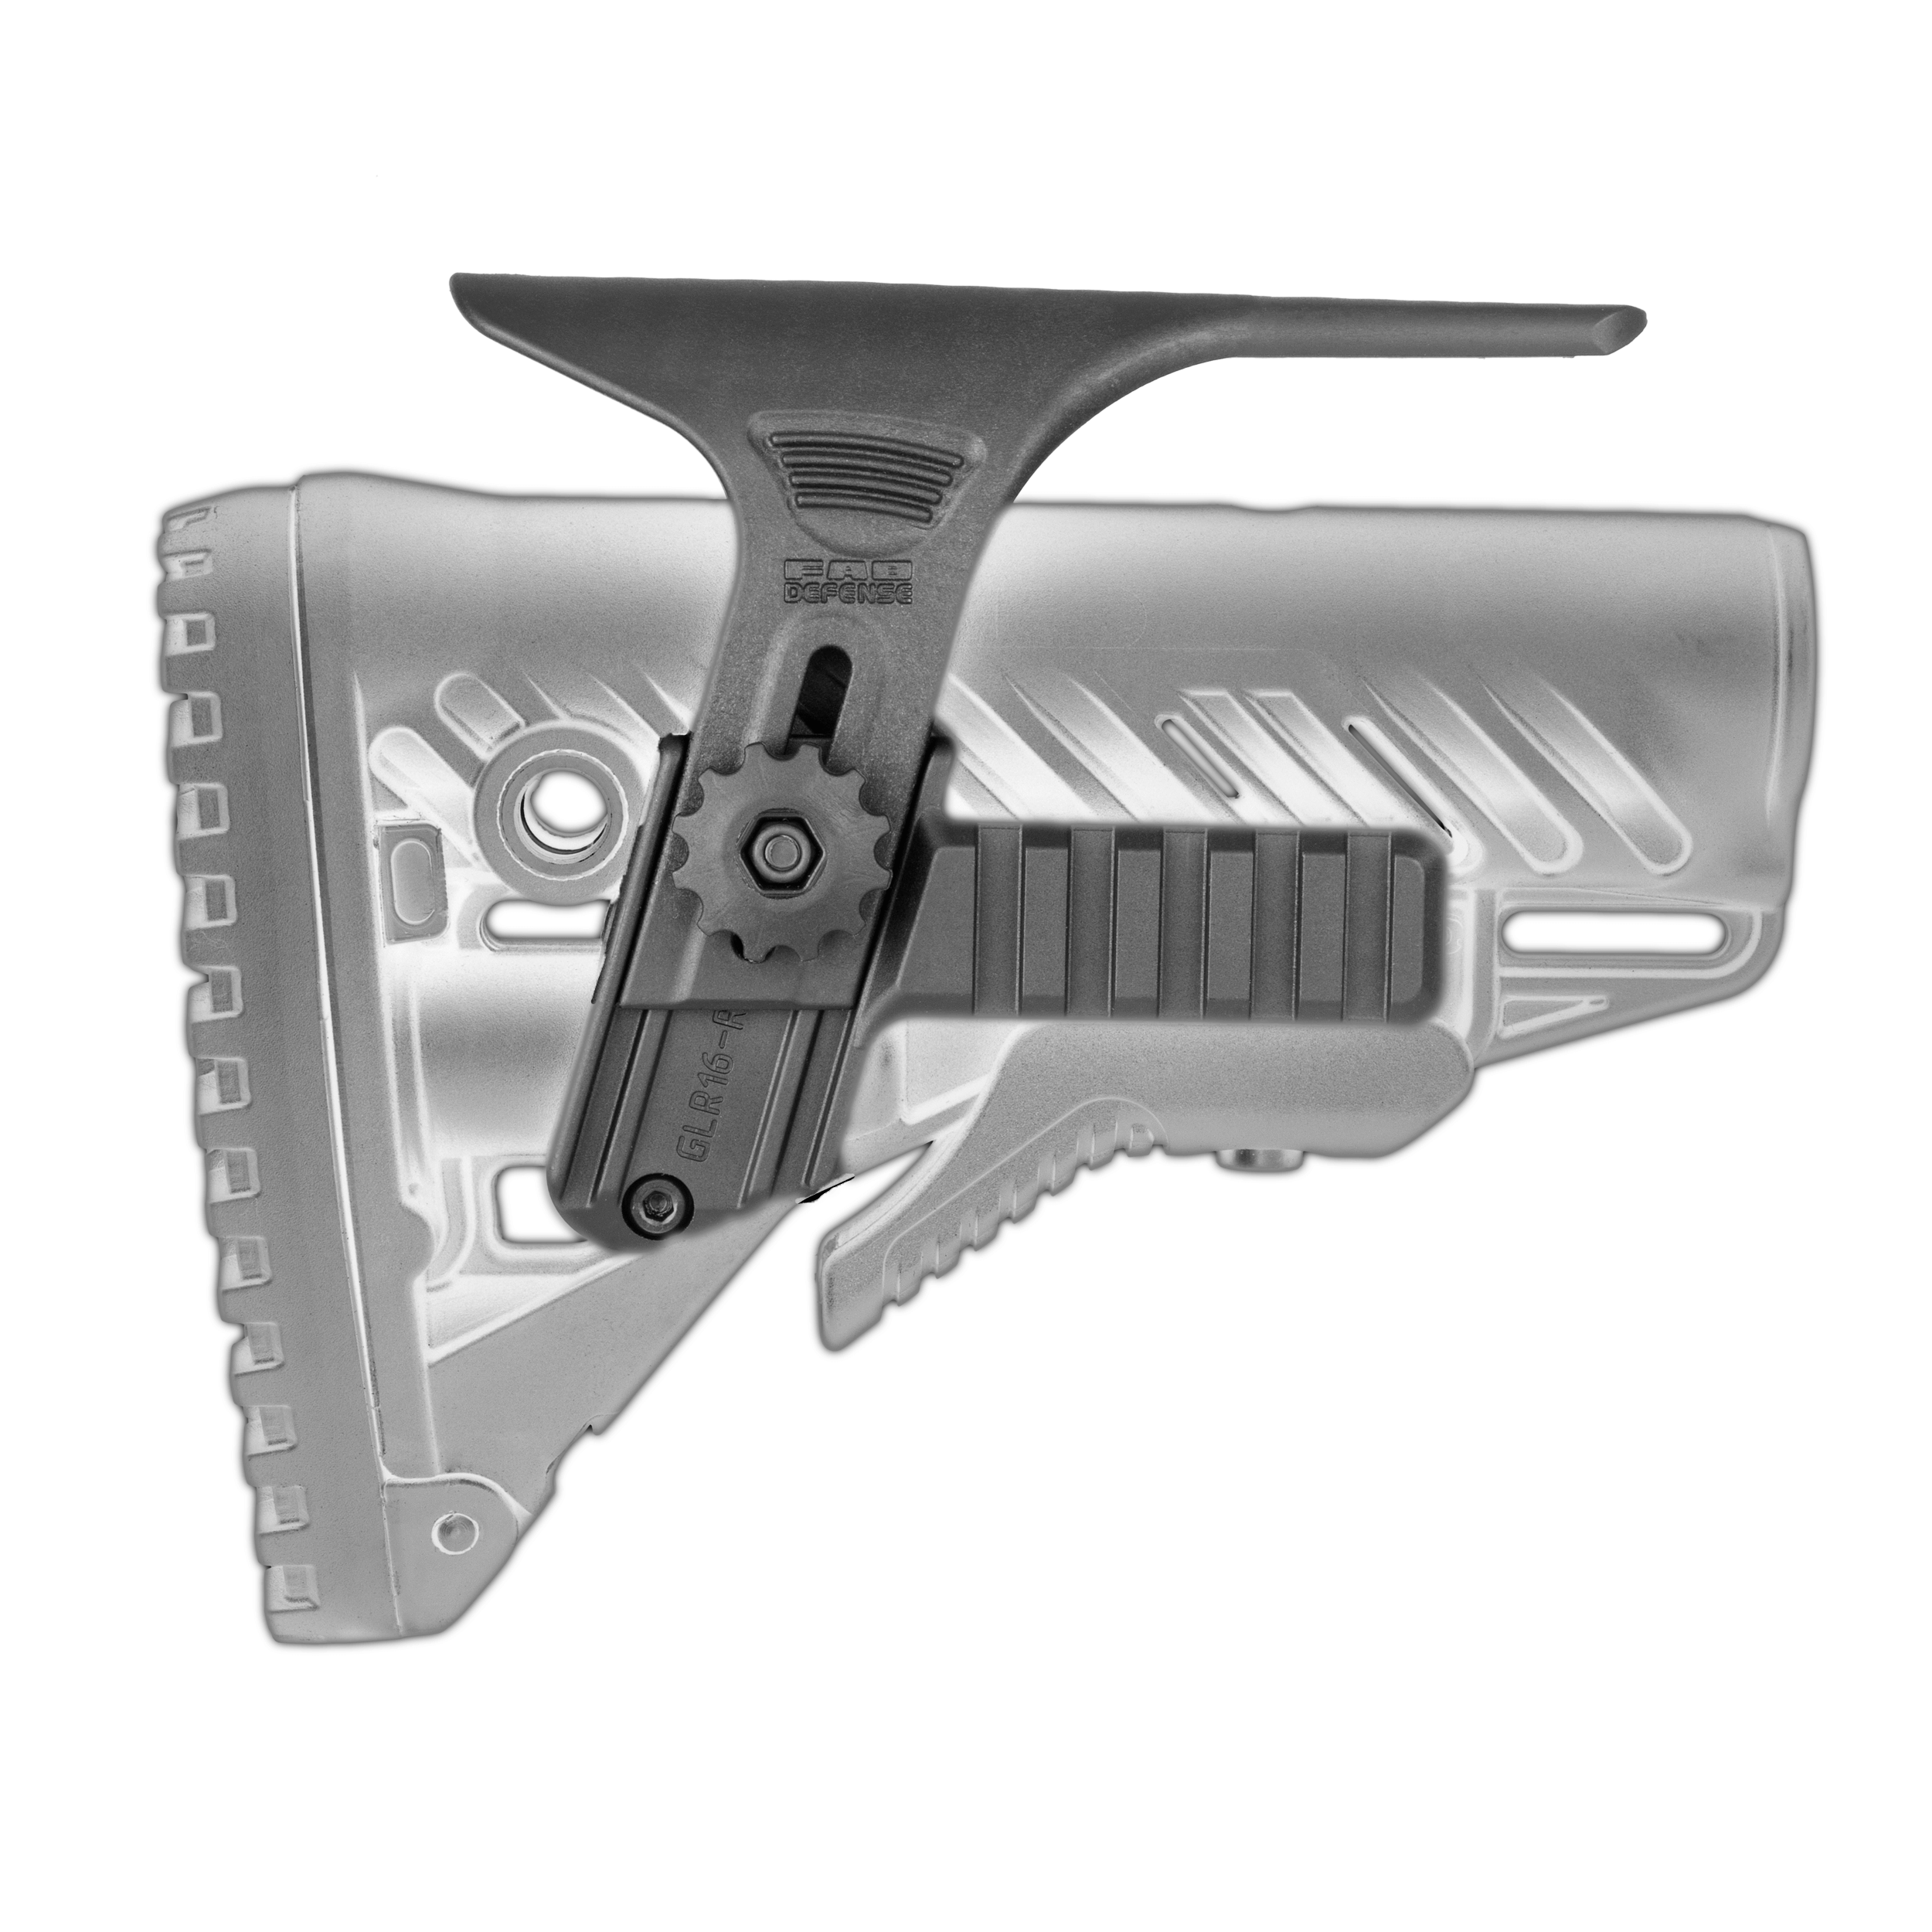 Cheek Rest Kit with Built in Dual picatinny rails for GLR-16